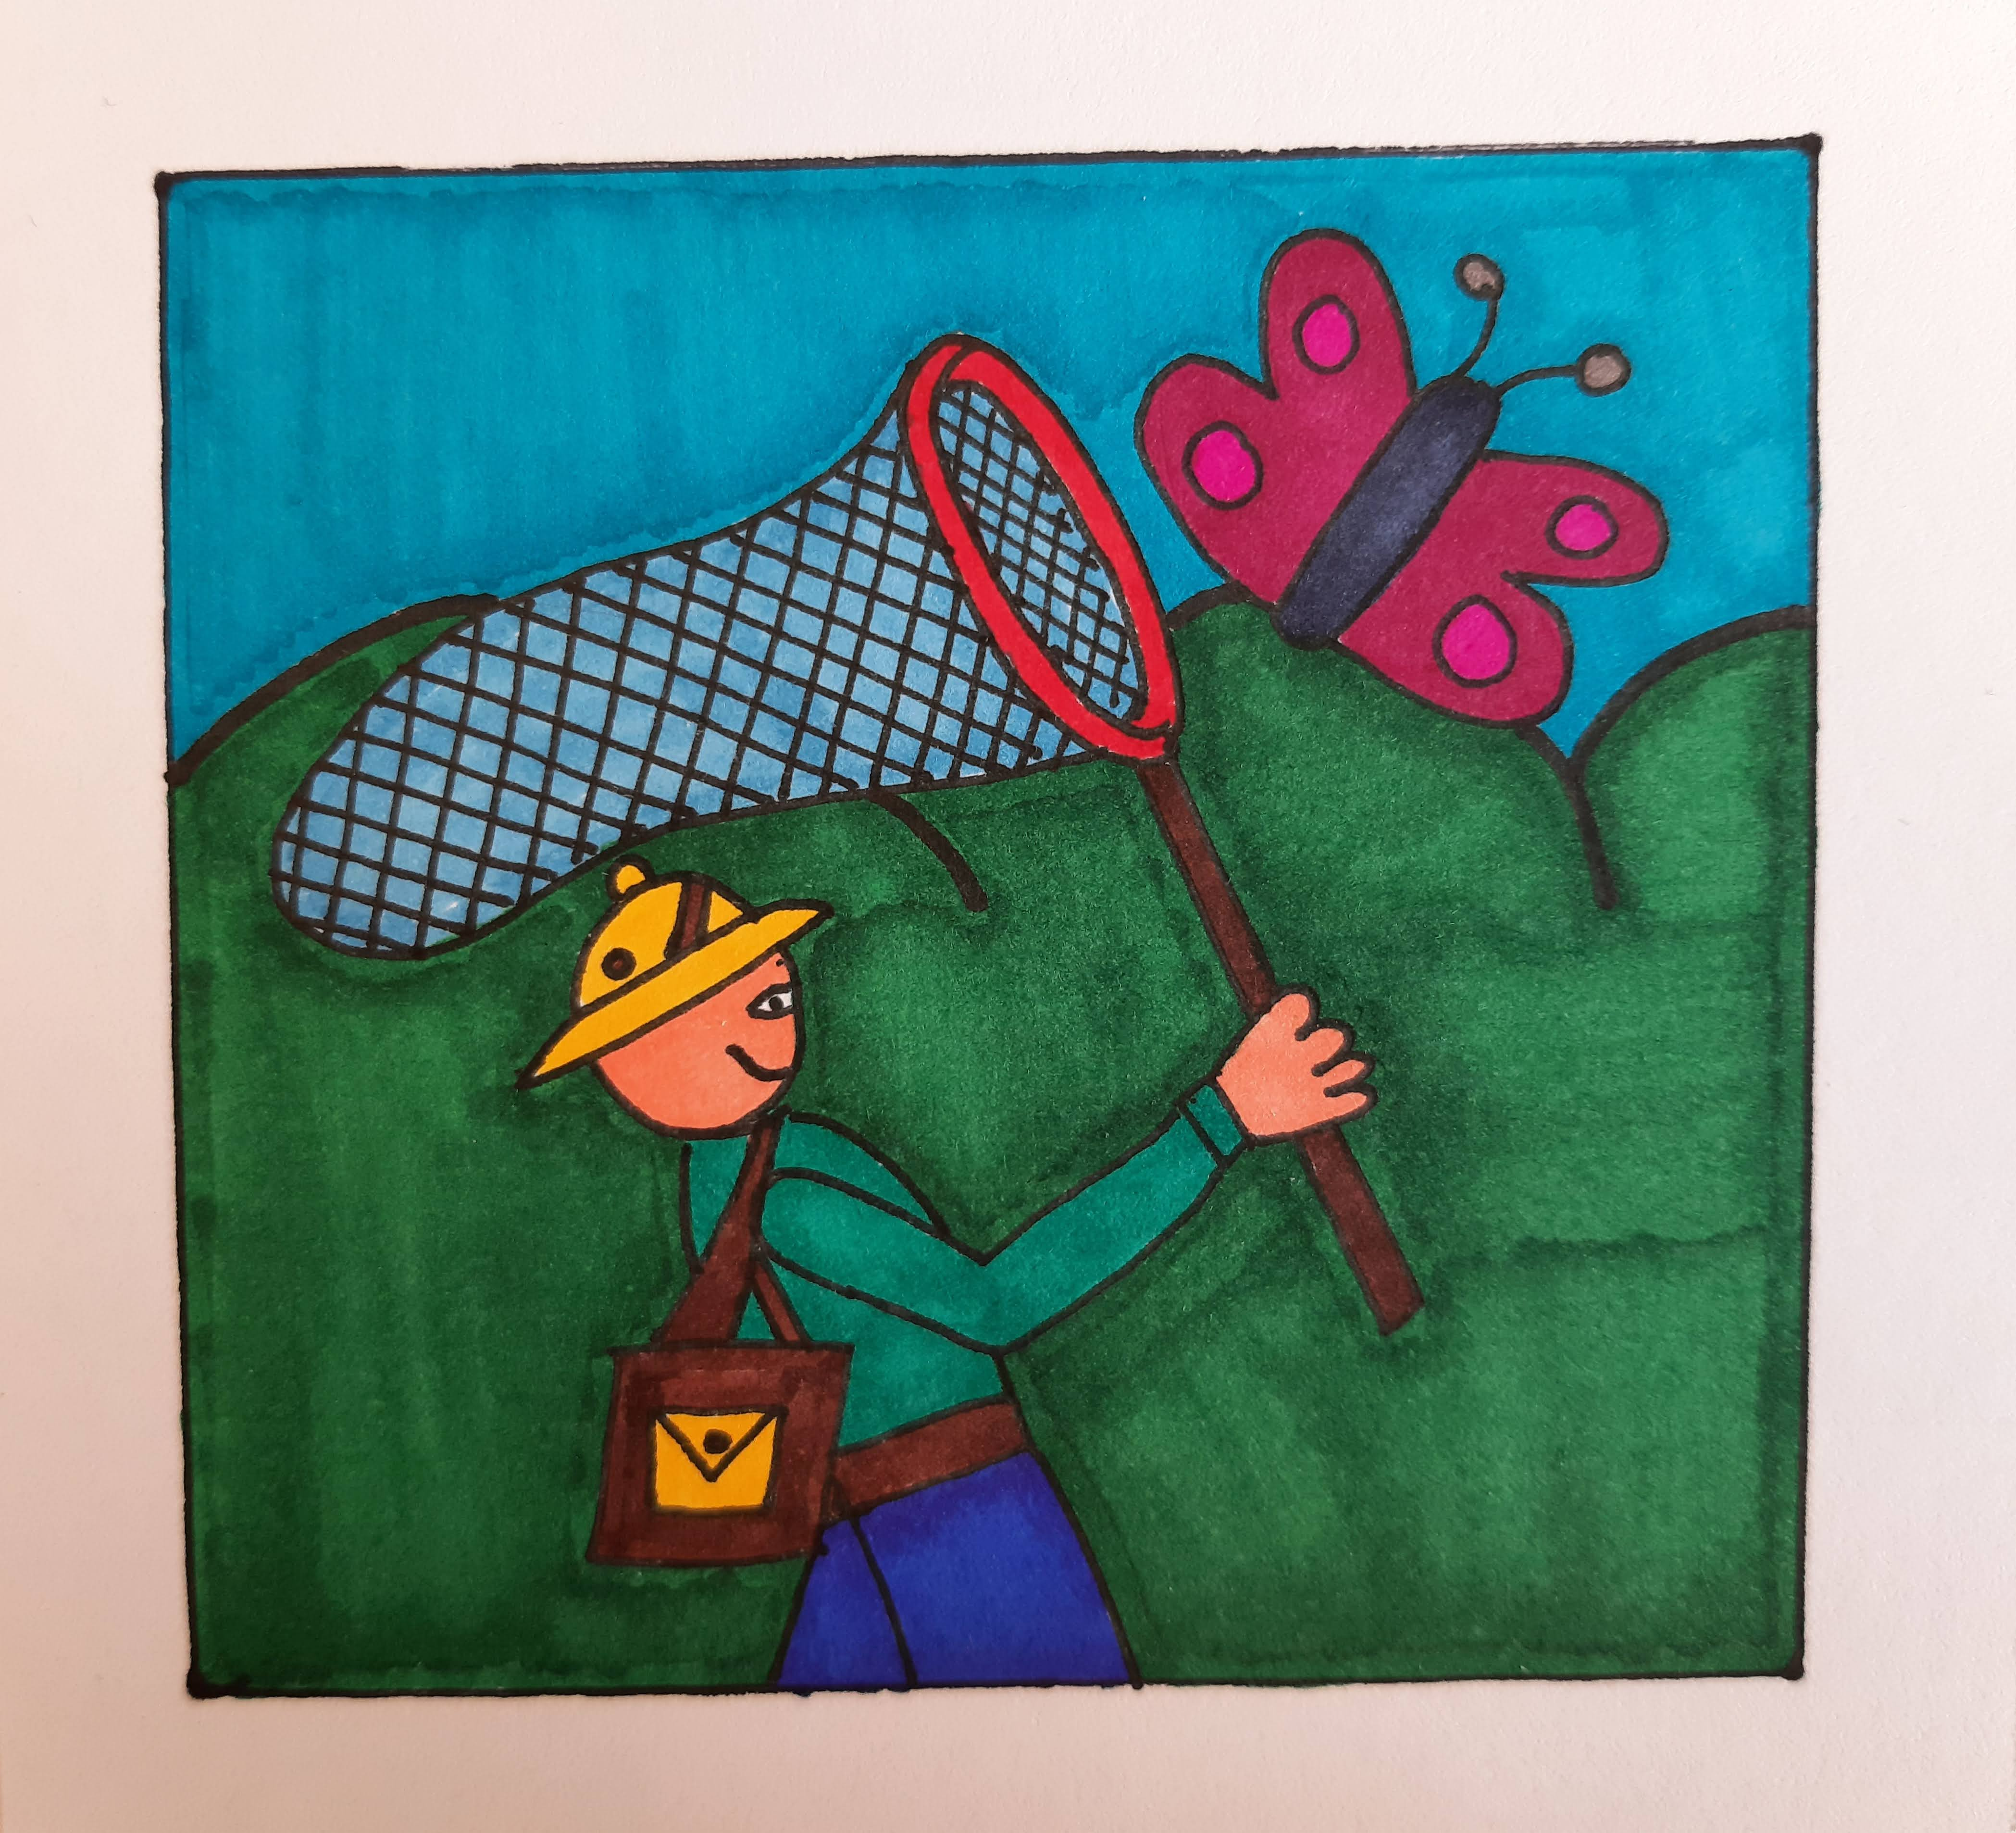 drawing of an entomologist capturing a butterfly with a net